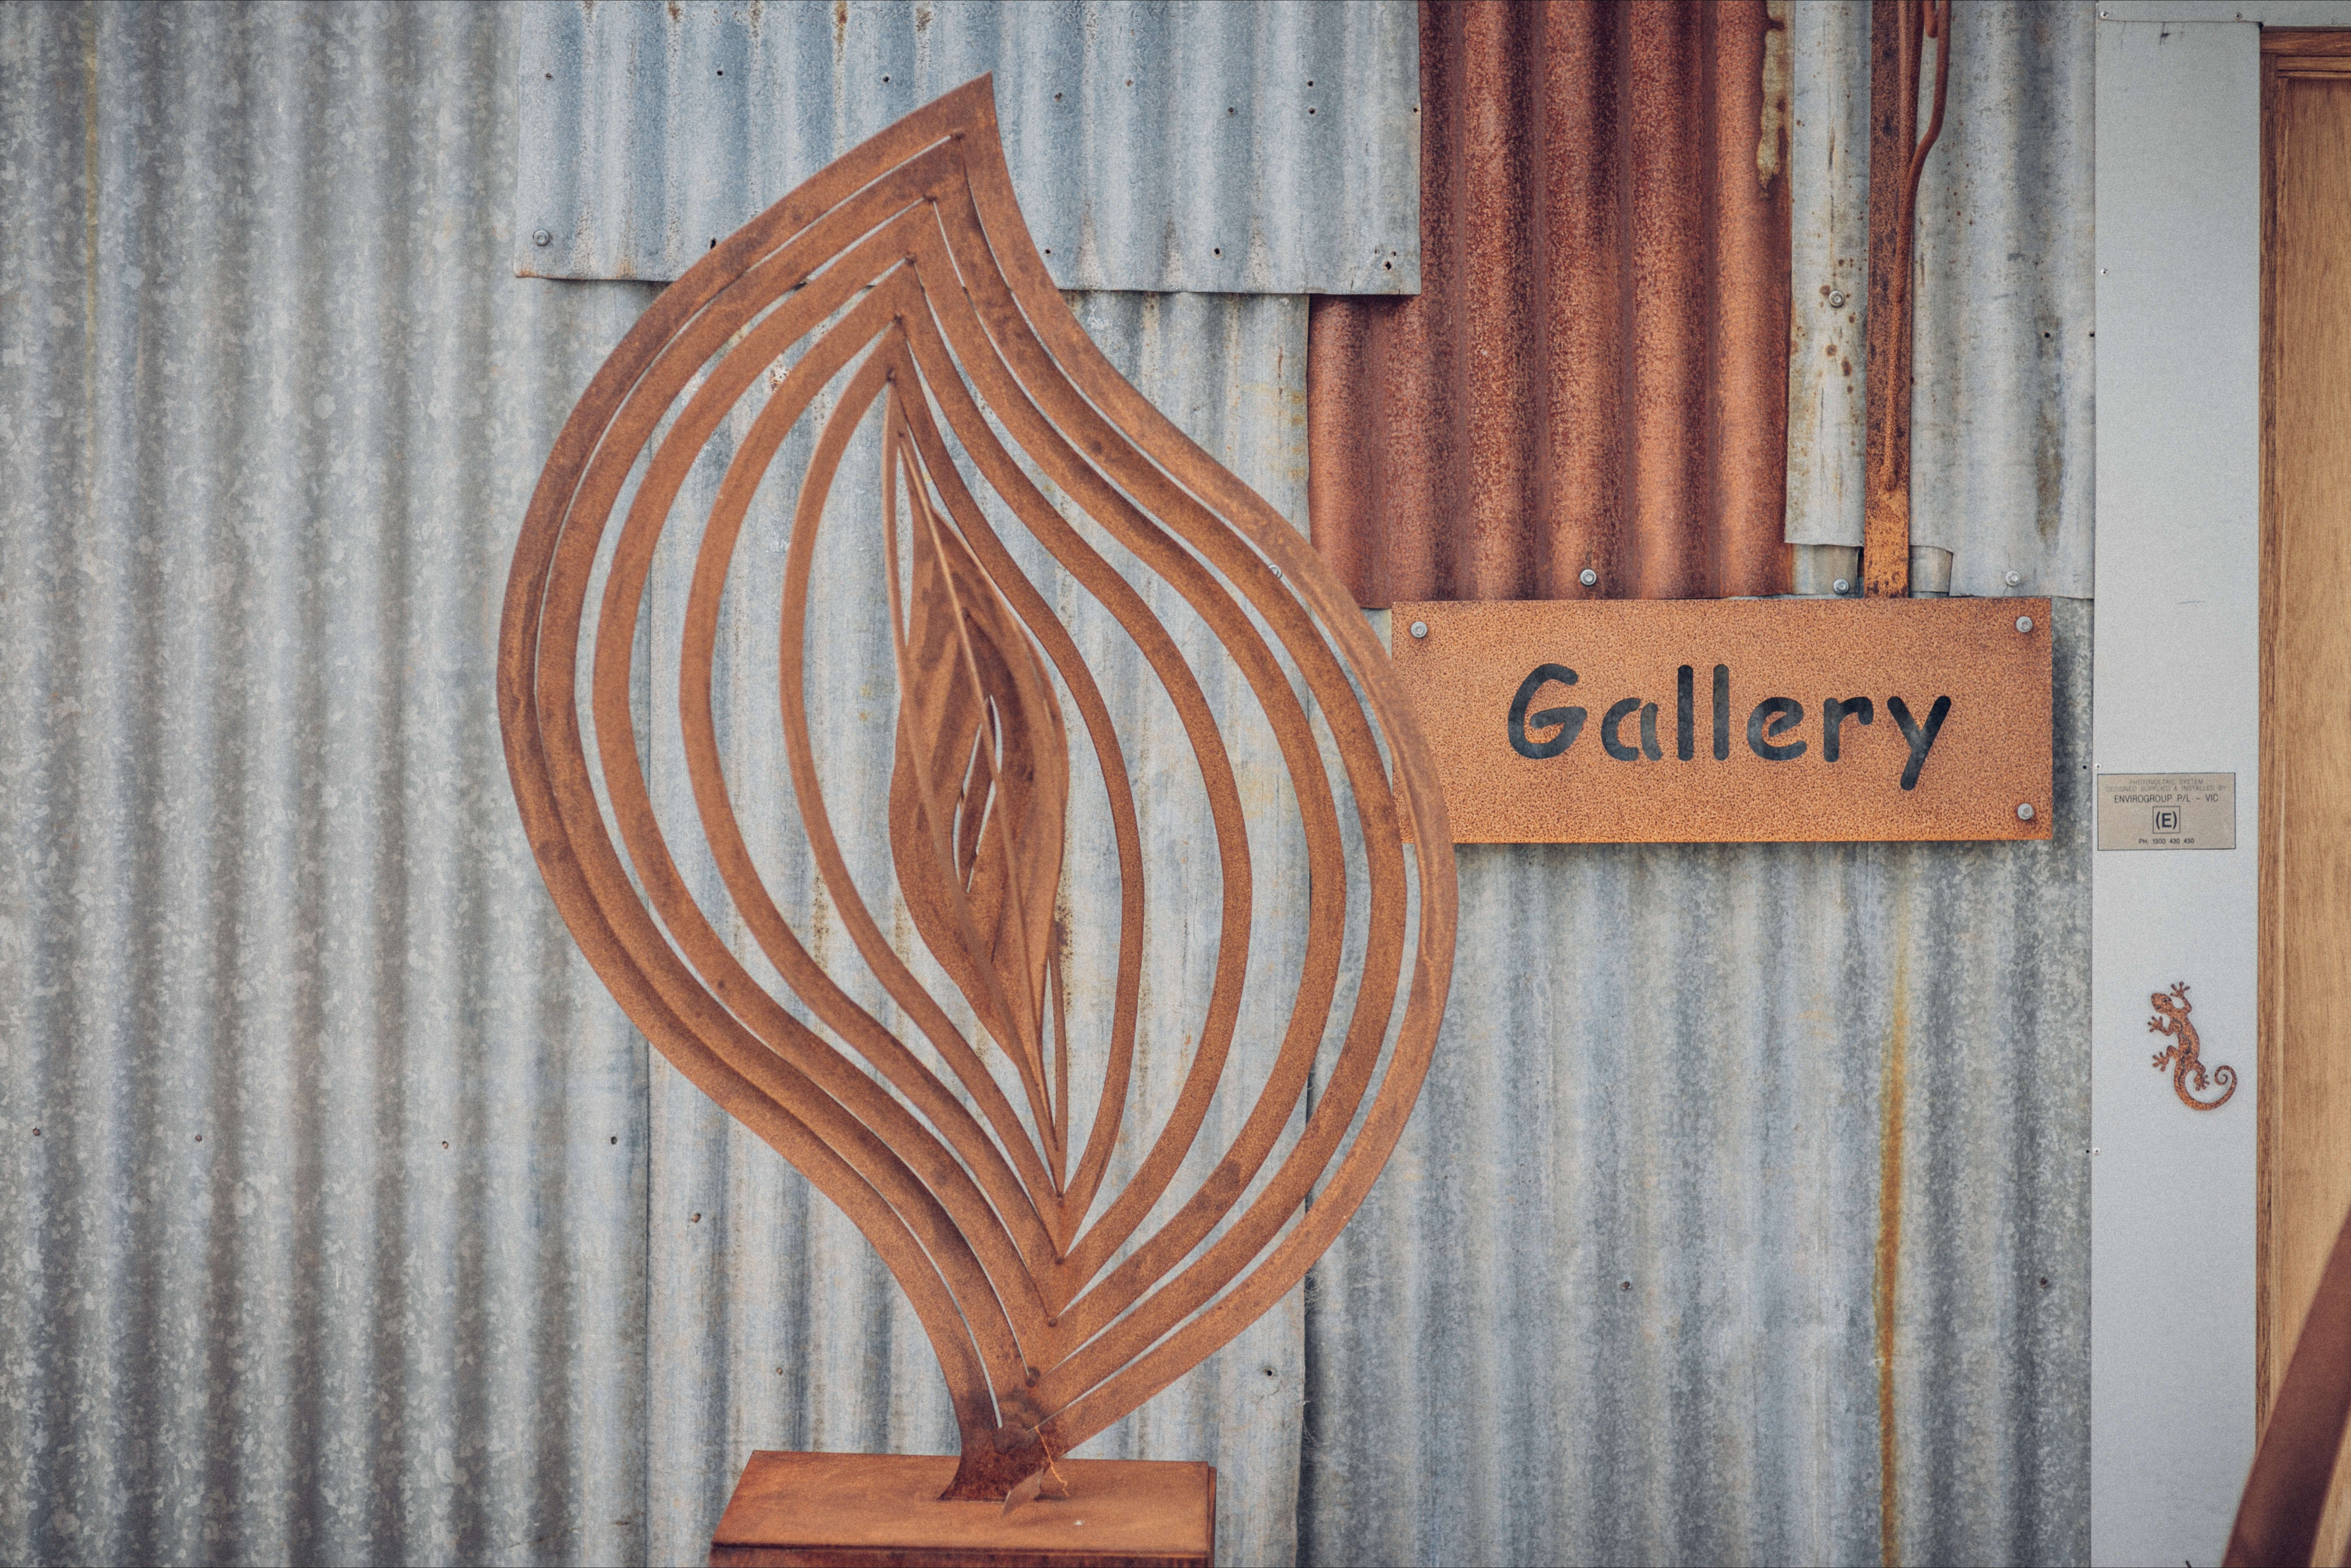 Overwrought Sculpture Garden and Gallery - Wagga Wagga Accommodation